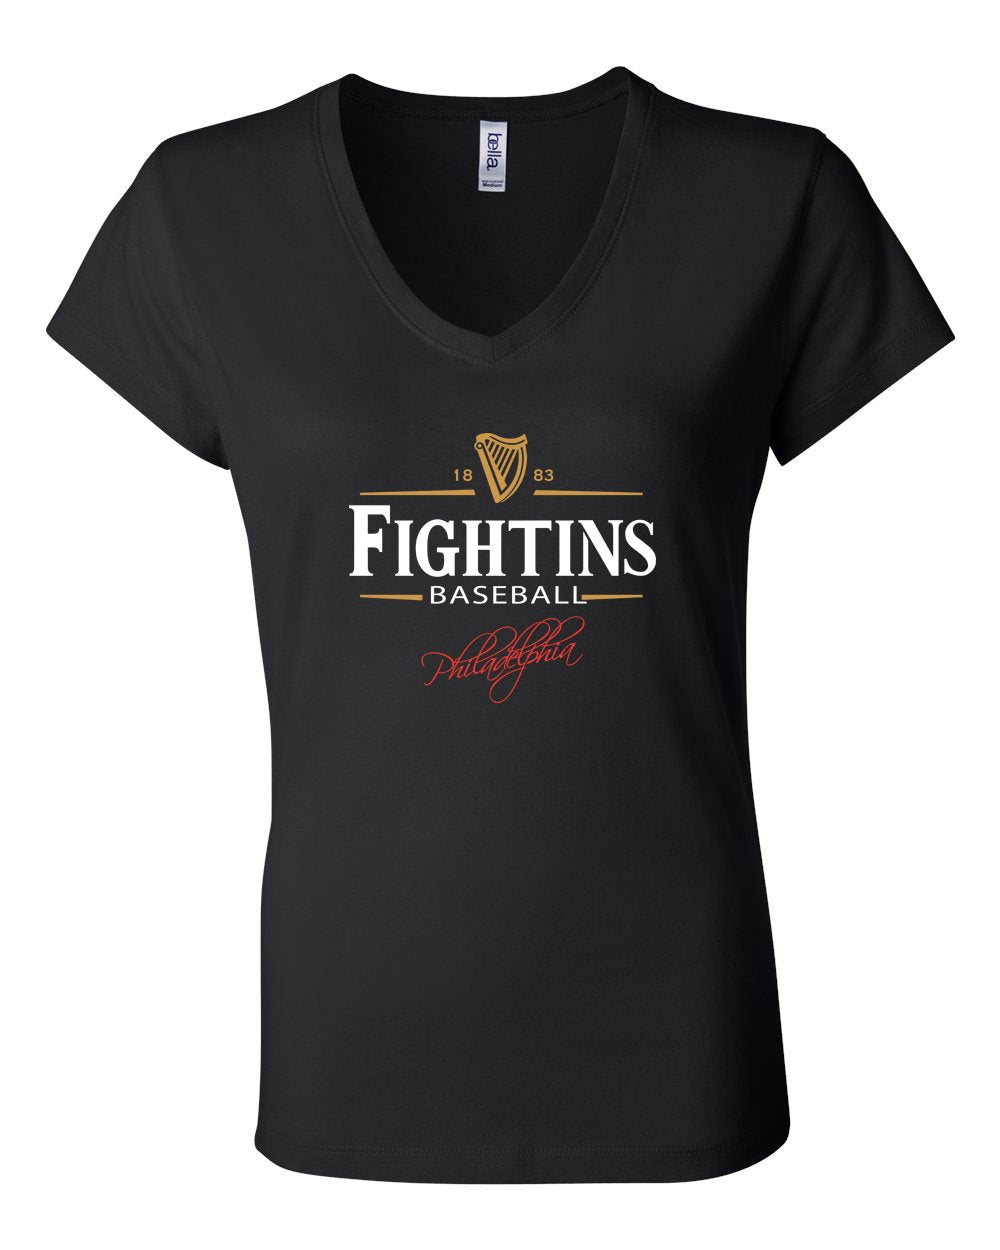 Fightin's Beer LADIES Junior Fit V-Neck